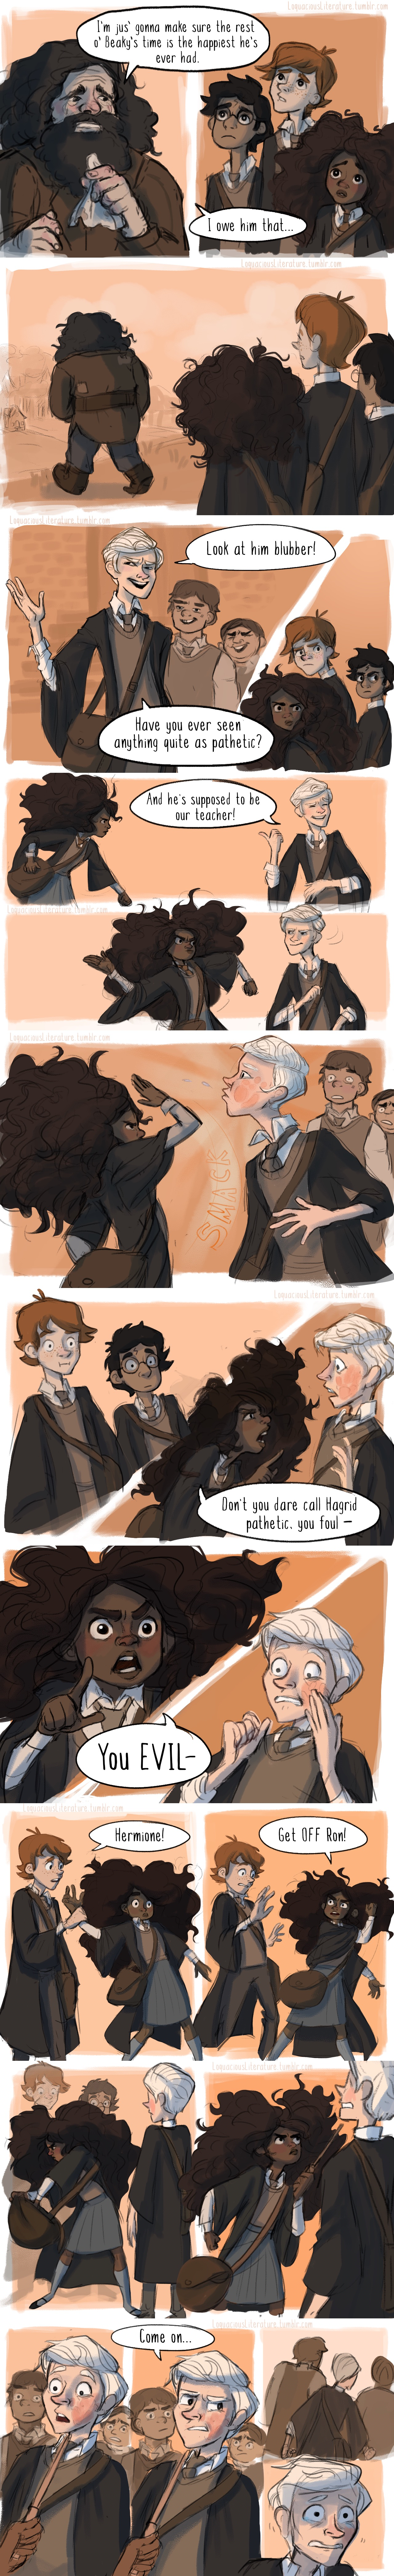 Nobody bad-mouths Hagrid on Hermione's watch! ᕙ( •̀ʖ•́ )୨ (Thank you to lizmaryr and zexionlikesmuffins for suggesting this glorious scene from the Prisoner of Azkaban!)